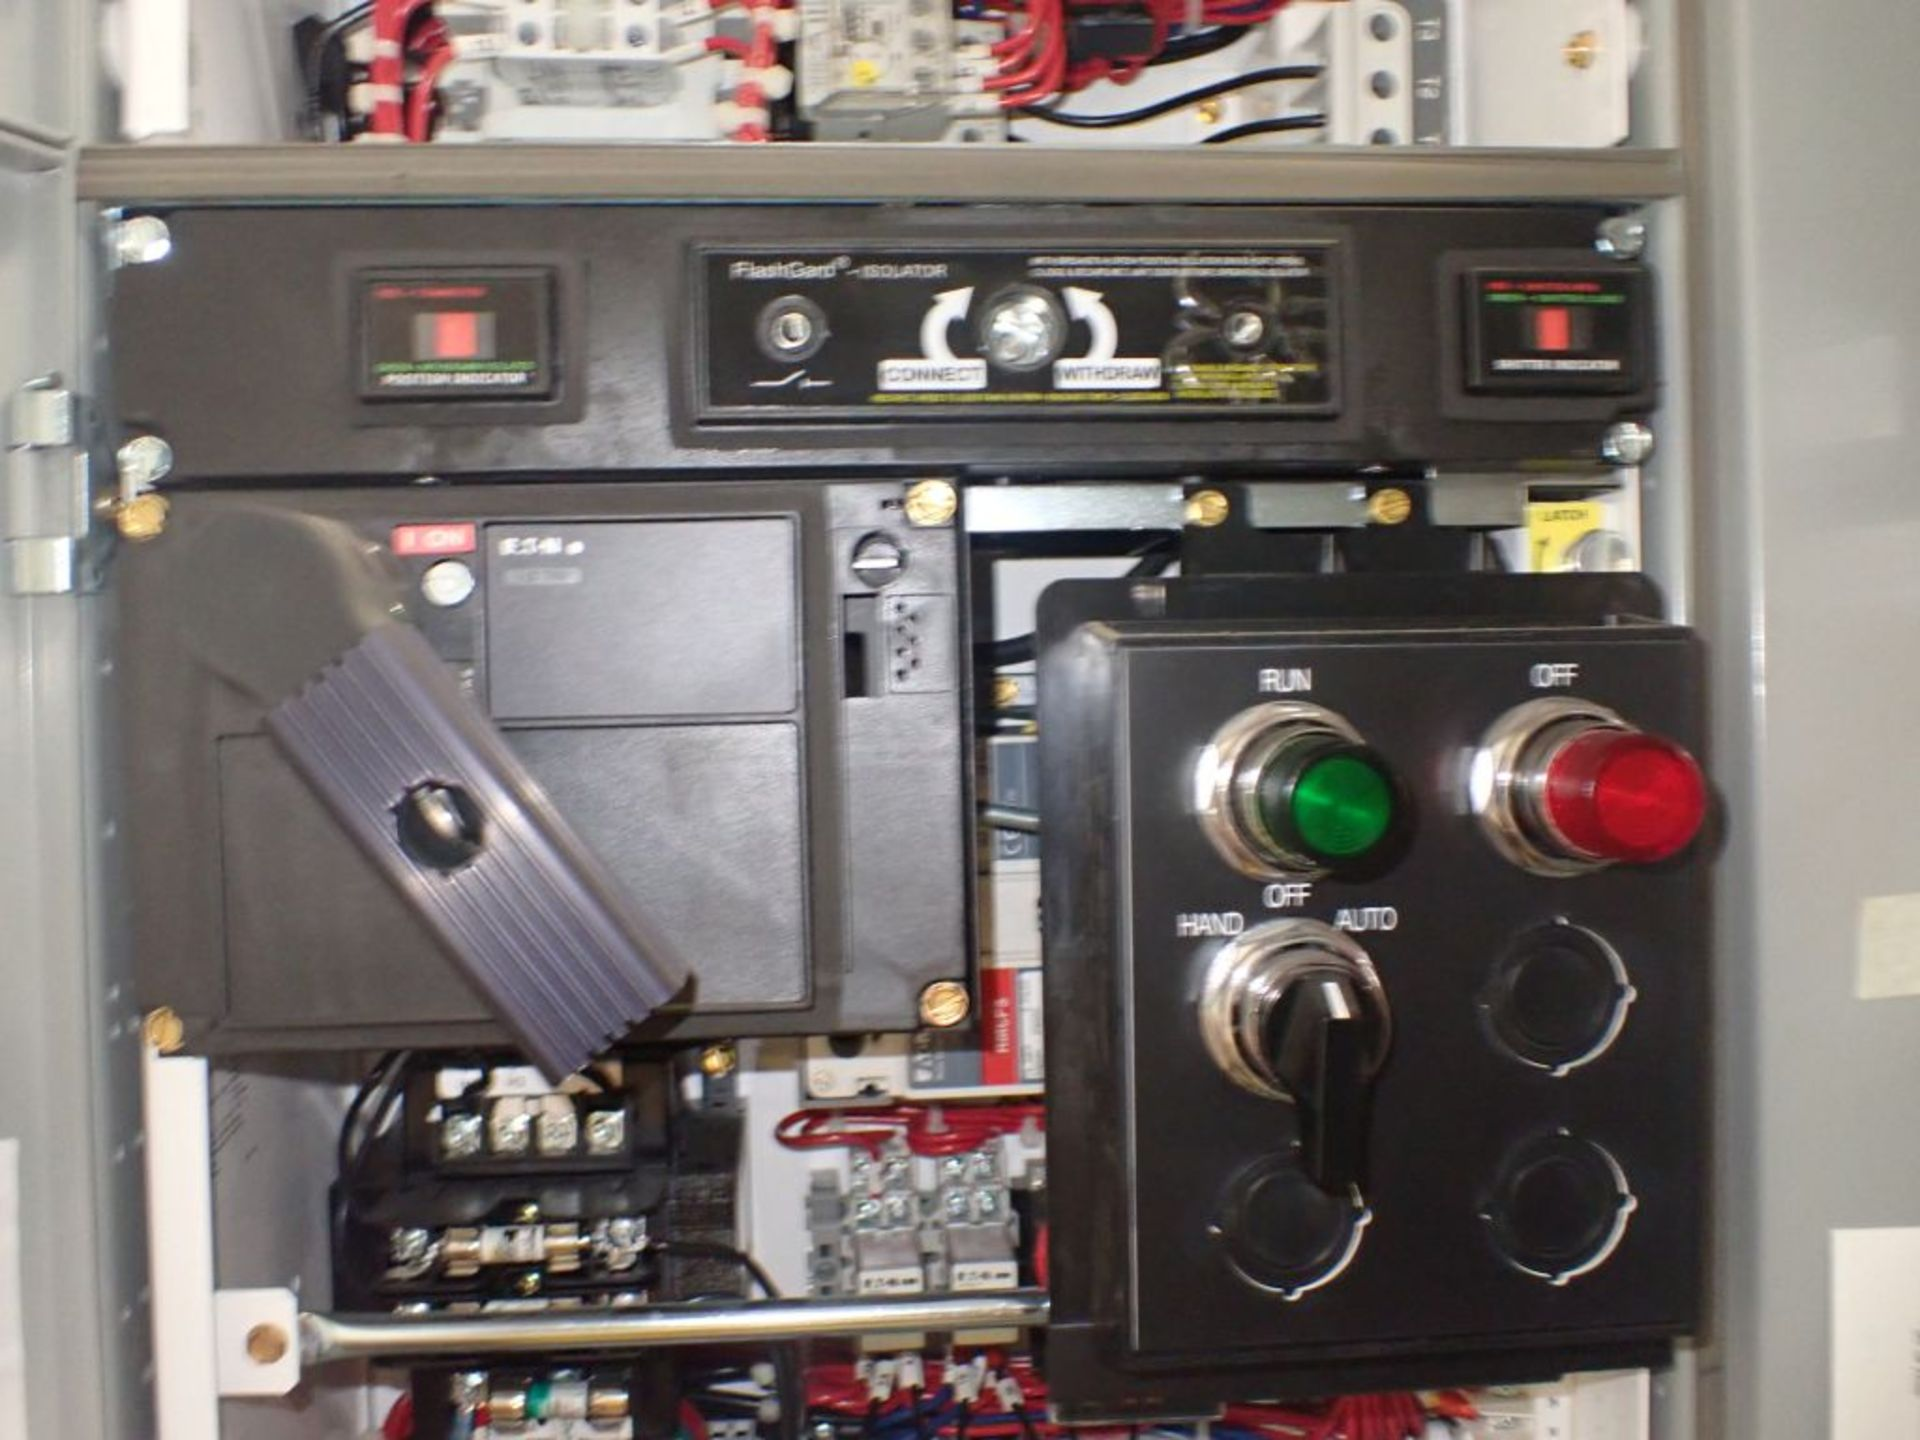 Eaton Freedom Flashgard Motor Control Center w/Components | (5) F206-15A-10HP; (4) F206-30A-10HP; ( - Image 20 of 84